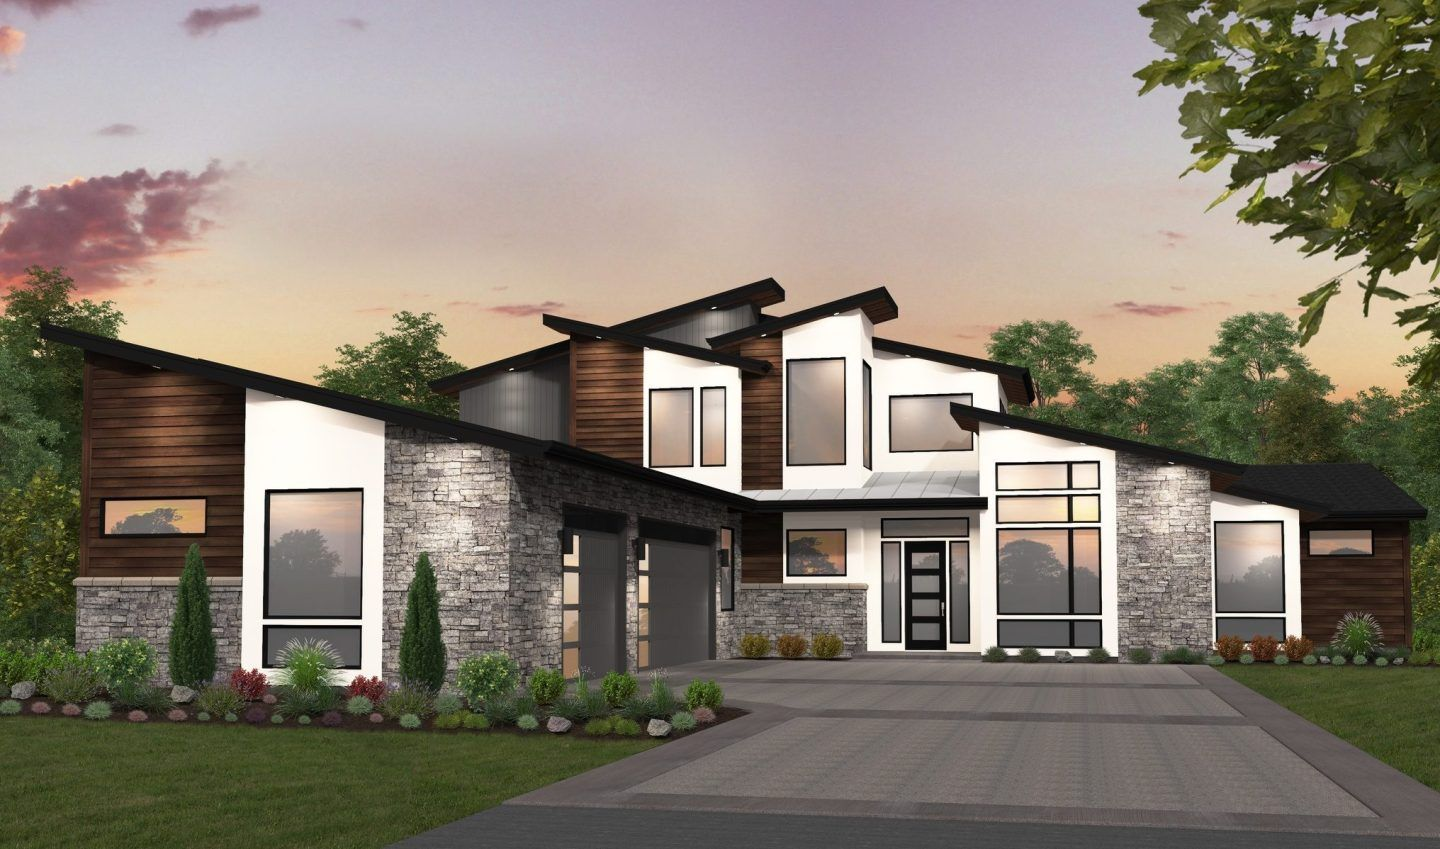 Madrid Large L Shaped Modern House Plan By Mark Stewart Contemporary House Plans Modern House Plan Big Modern Houses